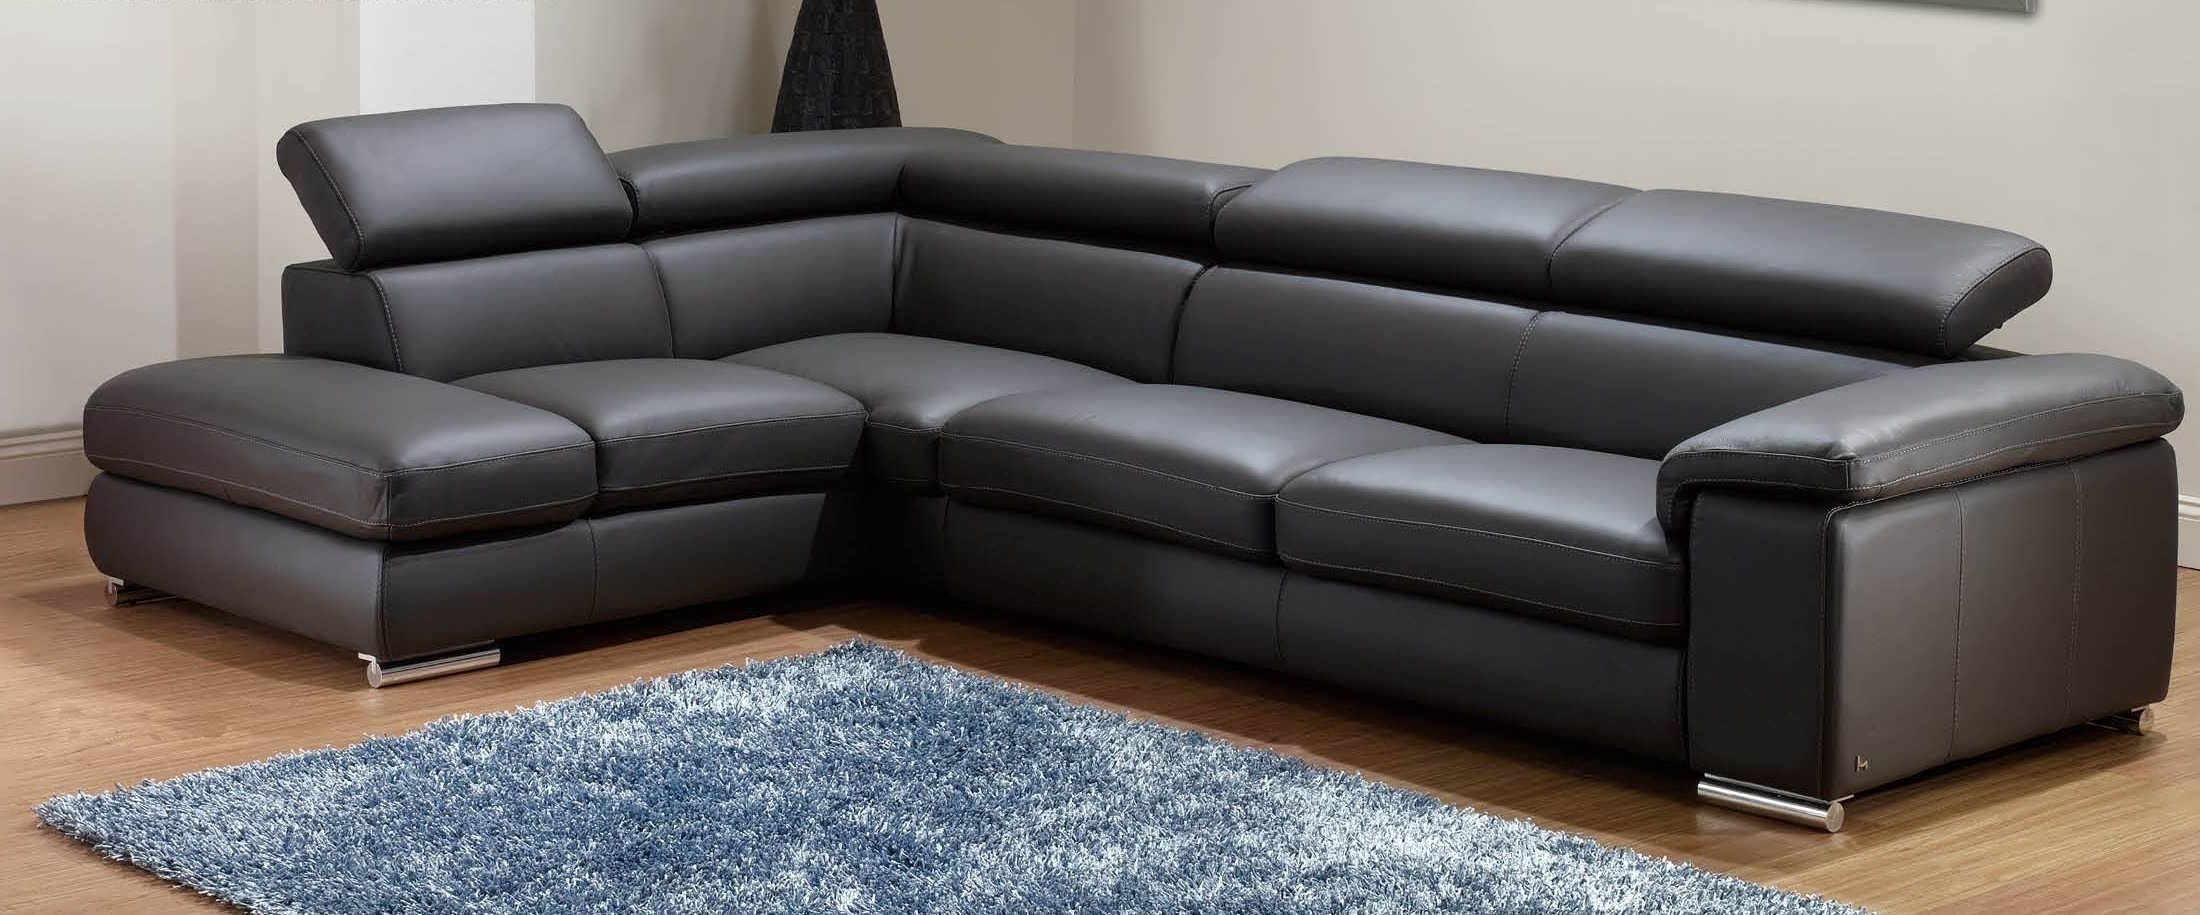 Well Known Small Sectionals With Chaise With Regard To Sofa : Chaise Sofa Double Chaise Sectional Small L Shaped Couch (View 14 of 15)